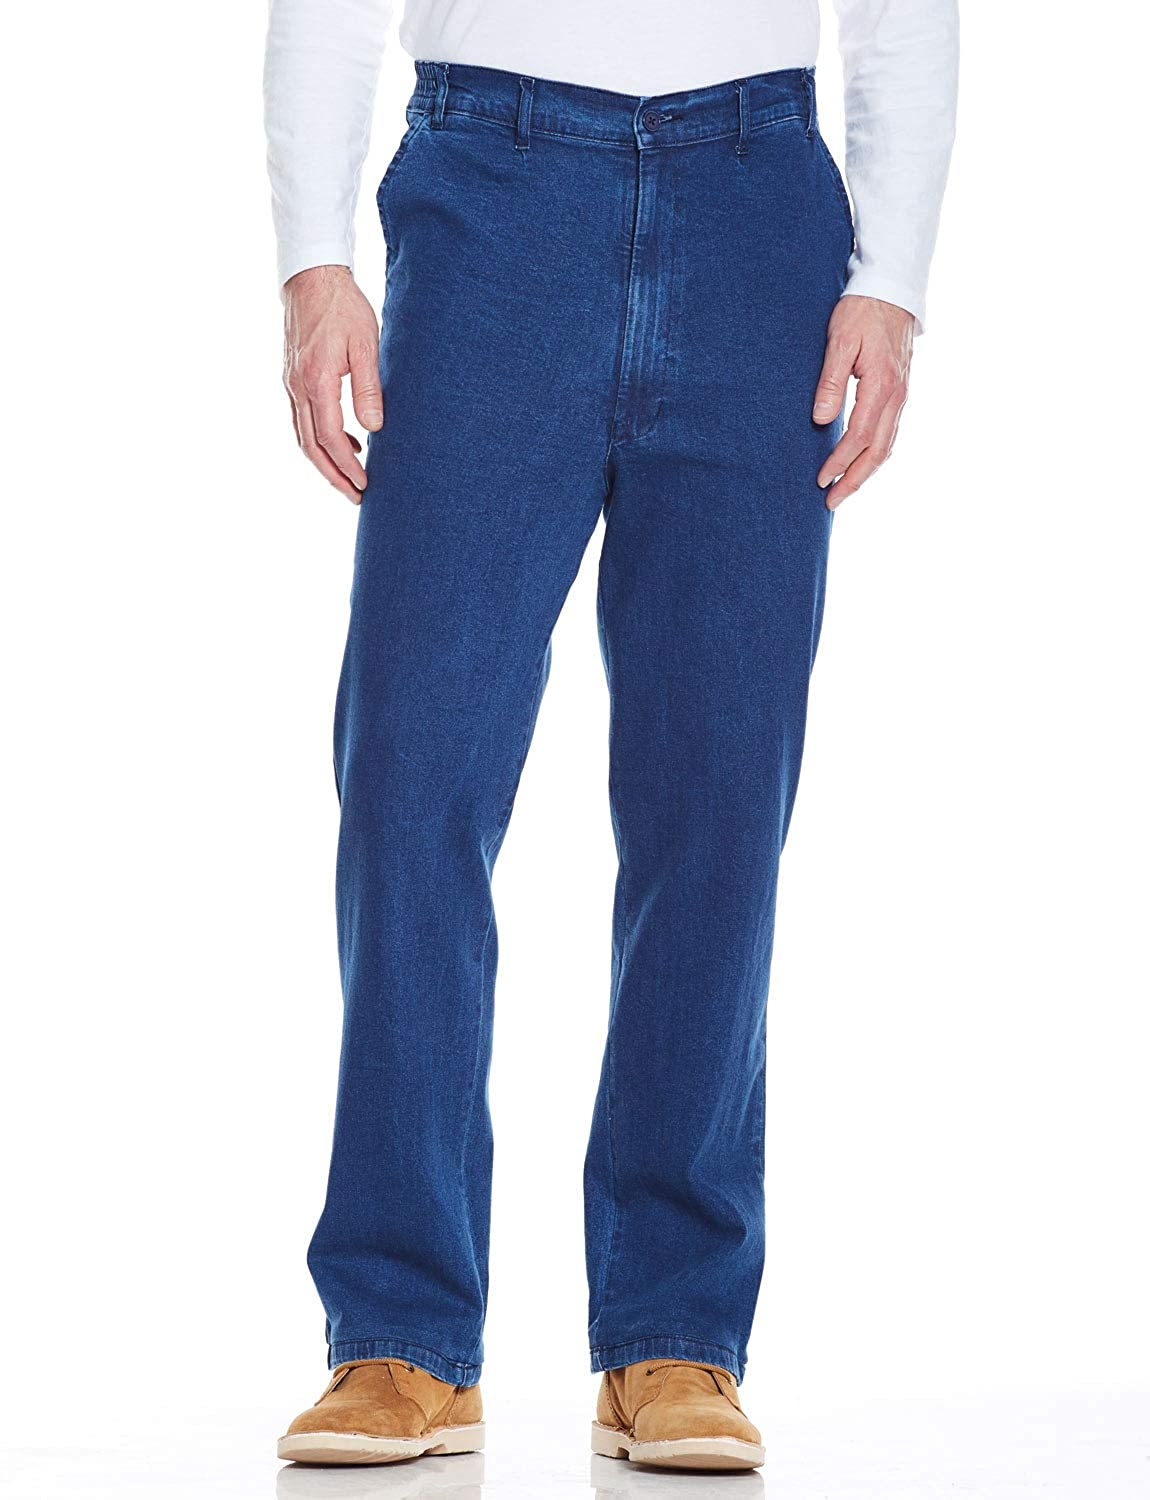 1950s Men's Clothing Mens HIGH-Rise Denim Elasticated Stretch Cotton Jean $54.32 AT vintagedancer.com